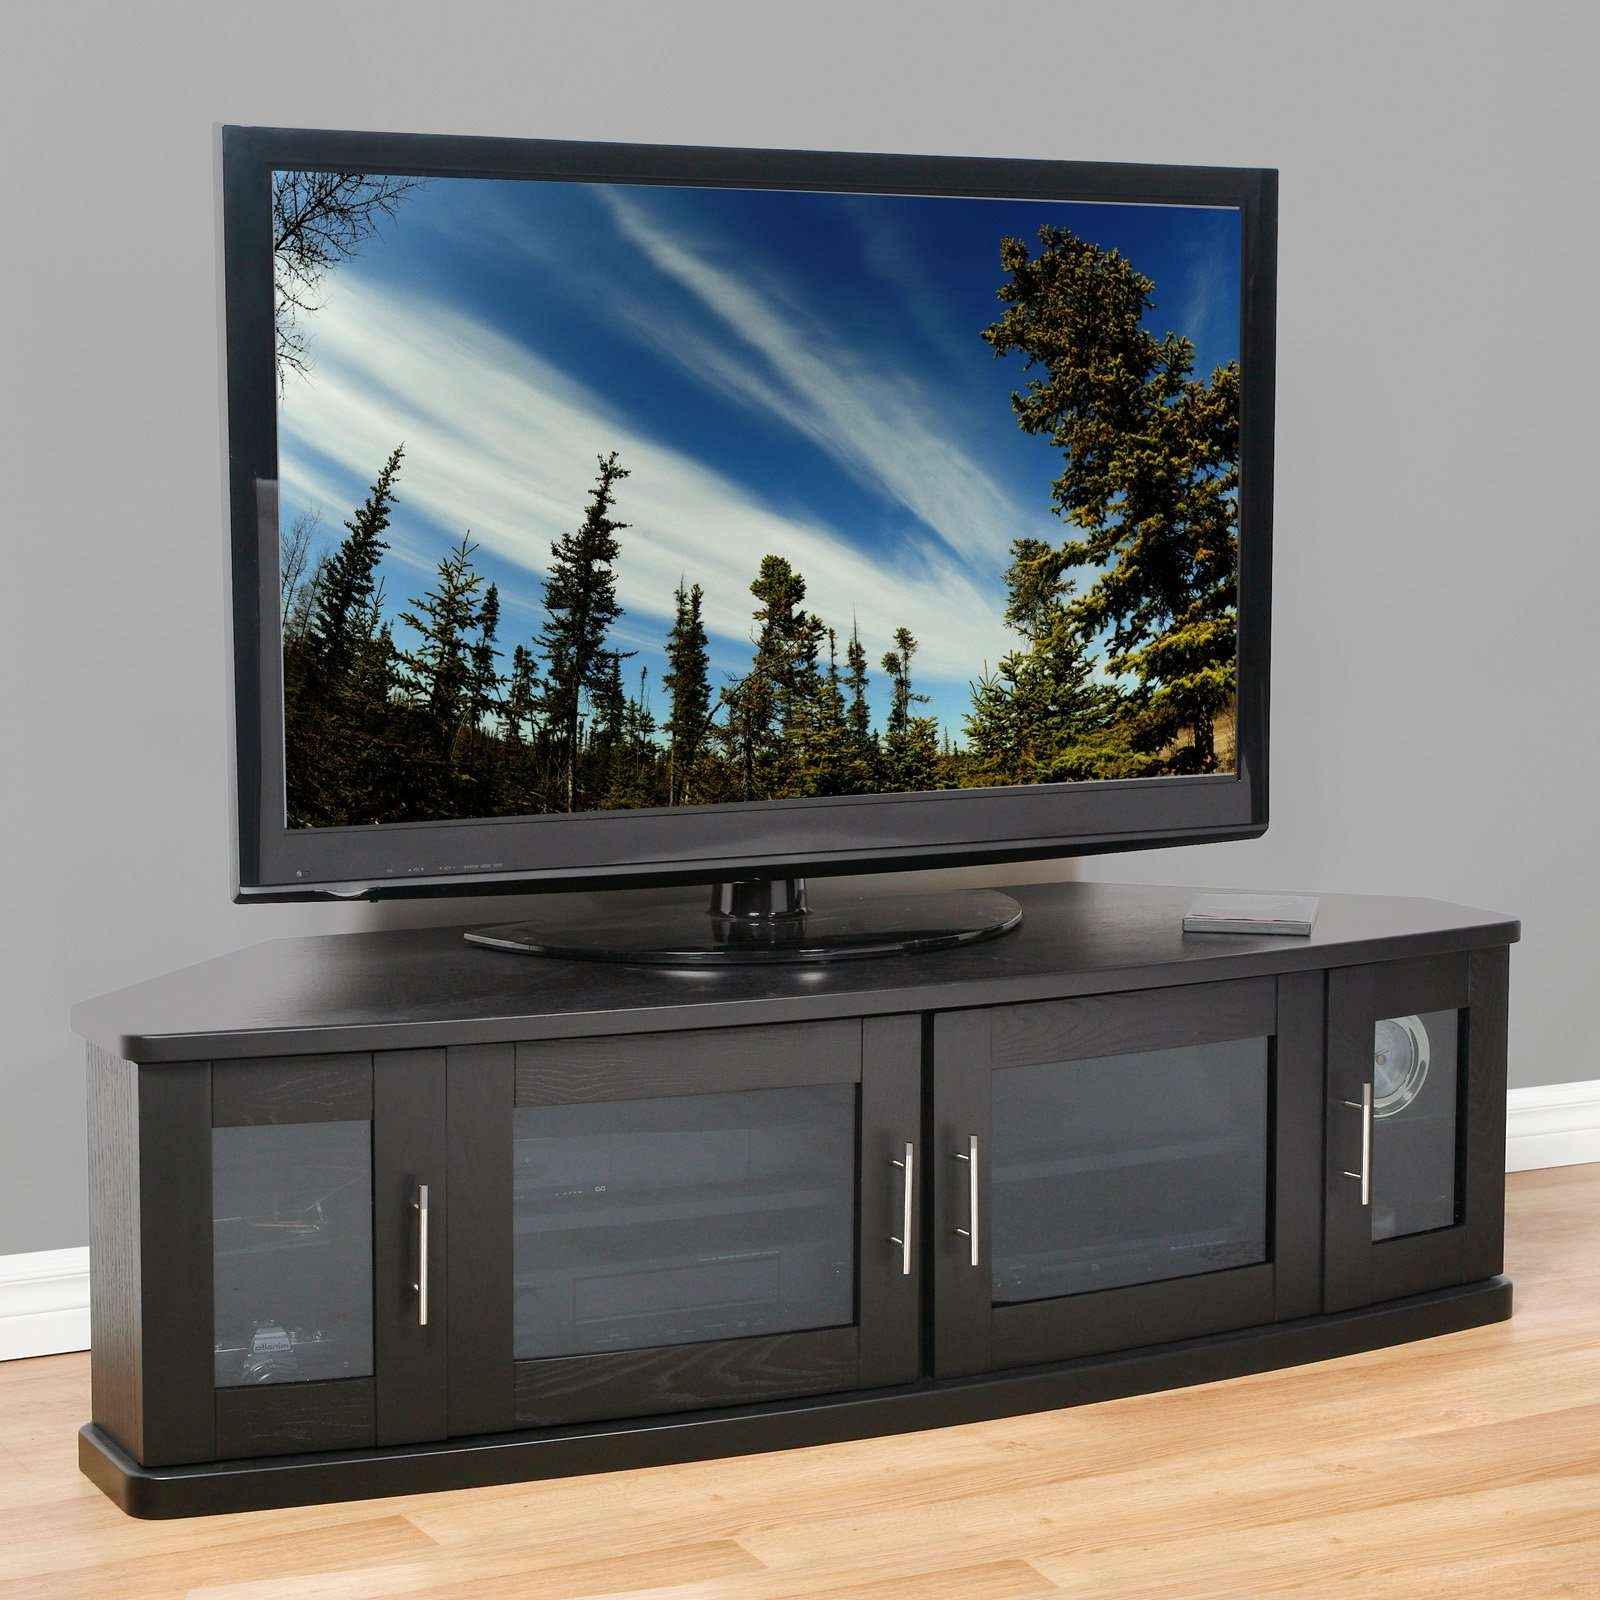 Plateau Newport 62 Inch Corner Tv Stand In Black – Walmart In Tv Stands For Corners (View 11 of 15)